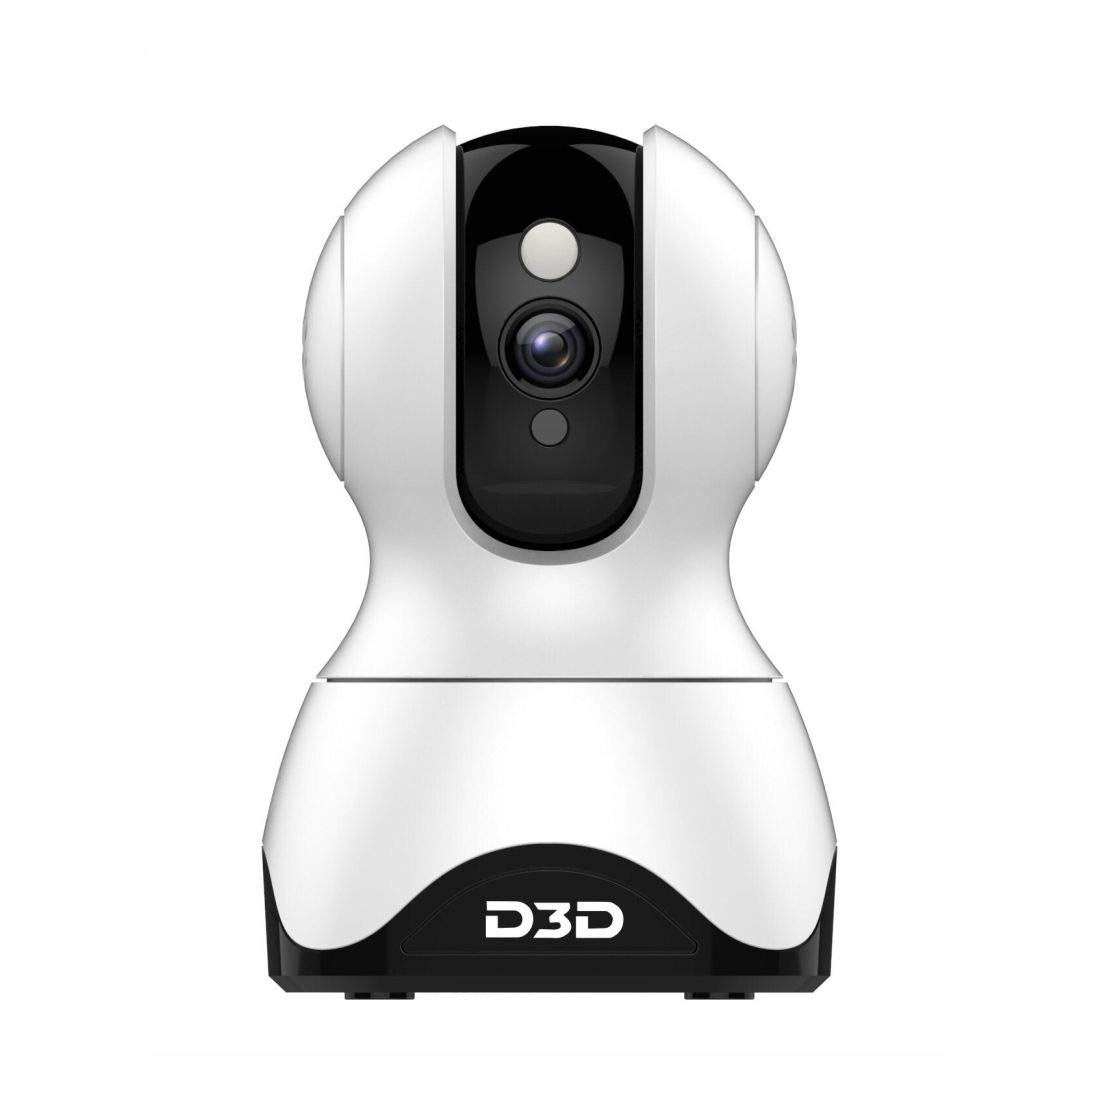 D3D Smart Cam Pan Tilt Home WiFi Camera | Wireless Indoor Security 360° 2MP 1080p (Full HD) | Up to 30 ft Night Vision | Up to 128 GB microSD Card Slot | Compatible with Alexa and Google